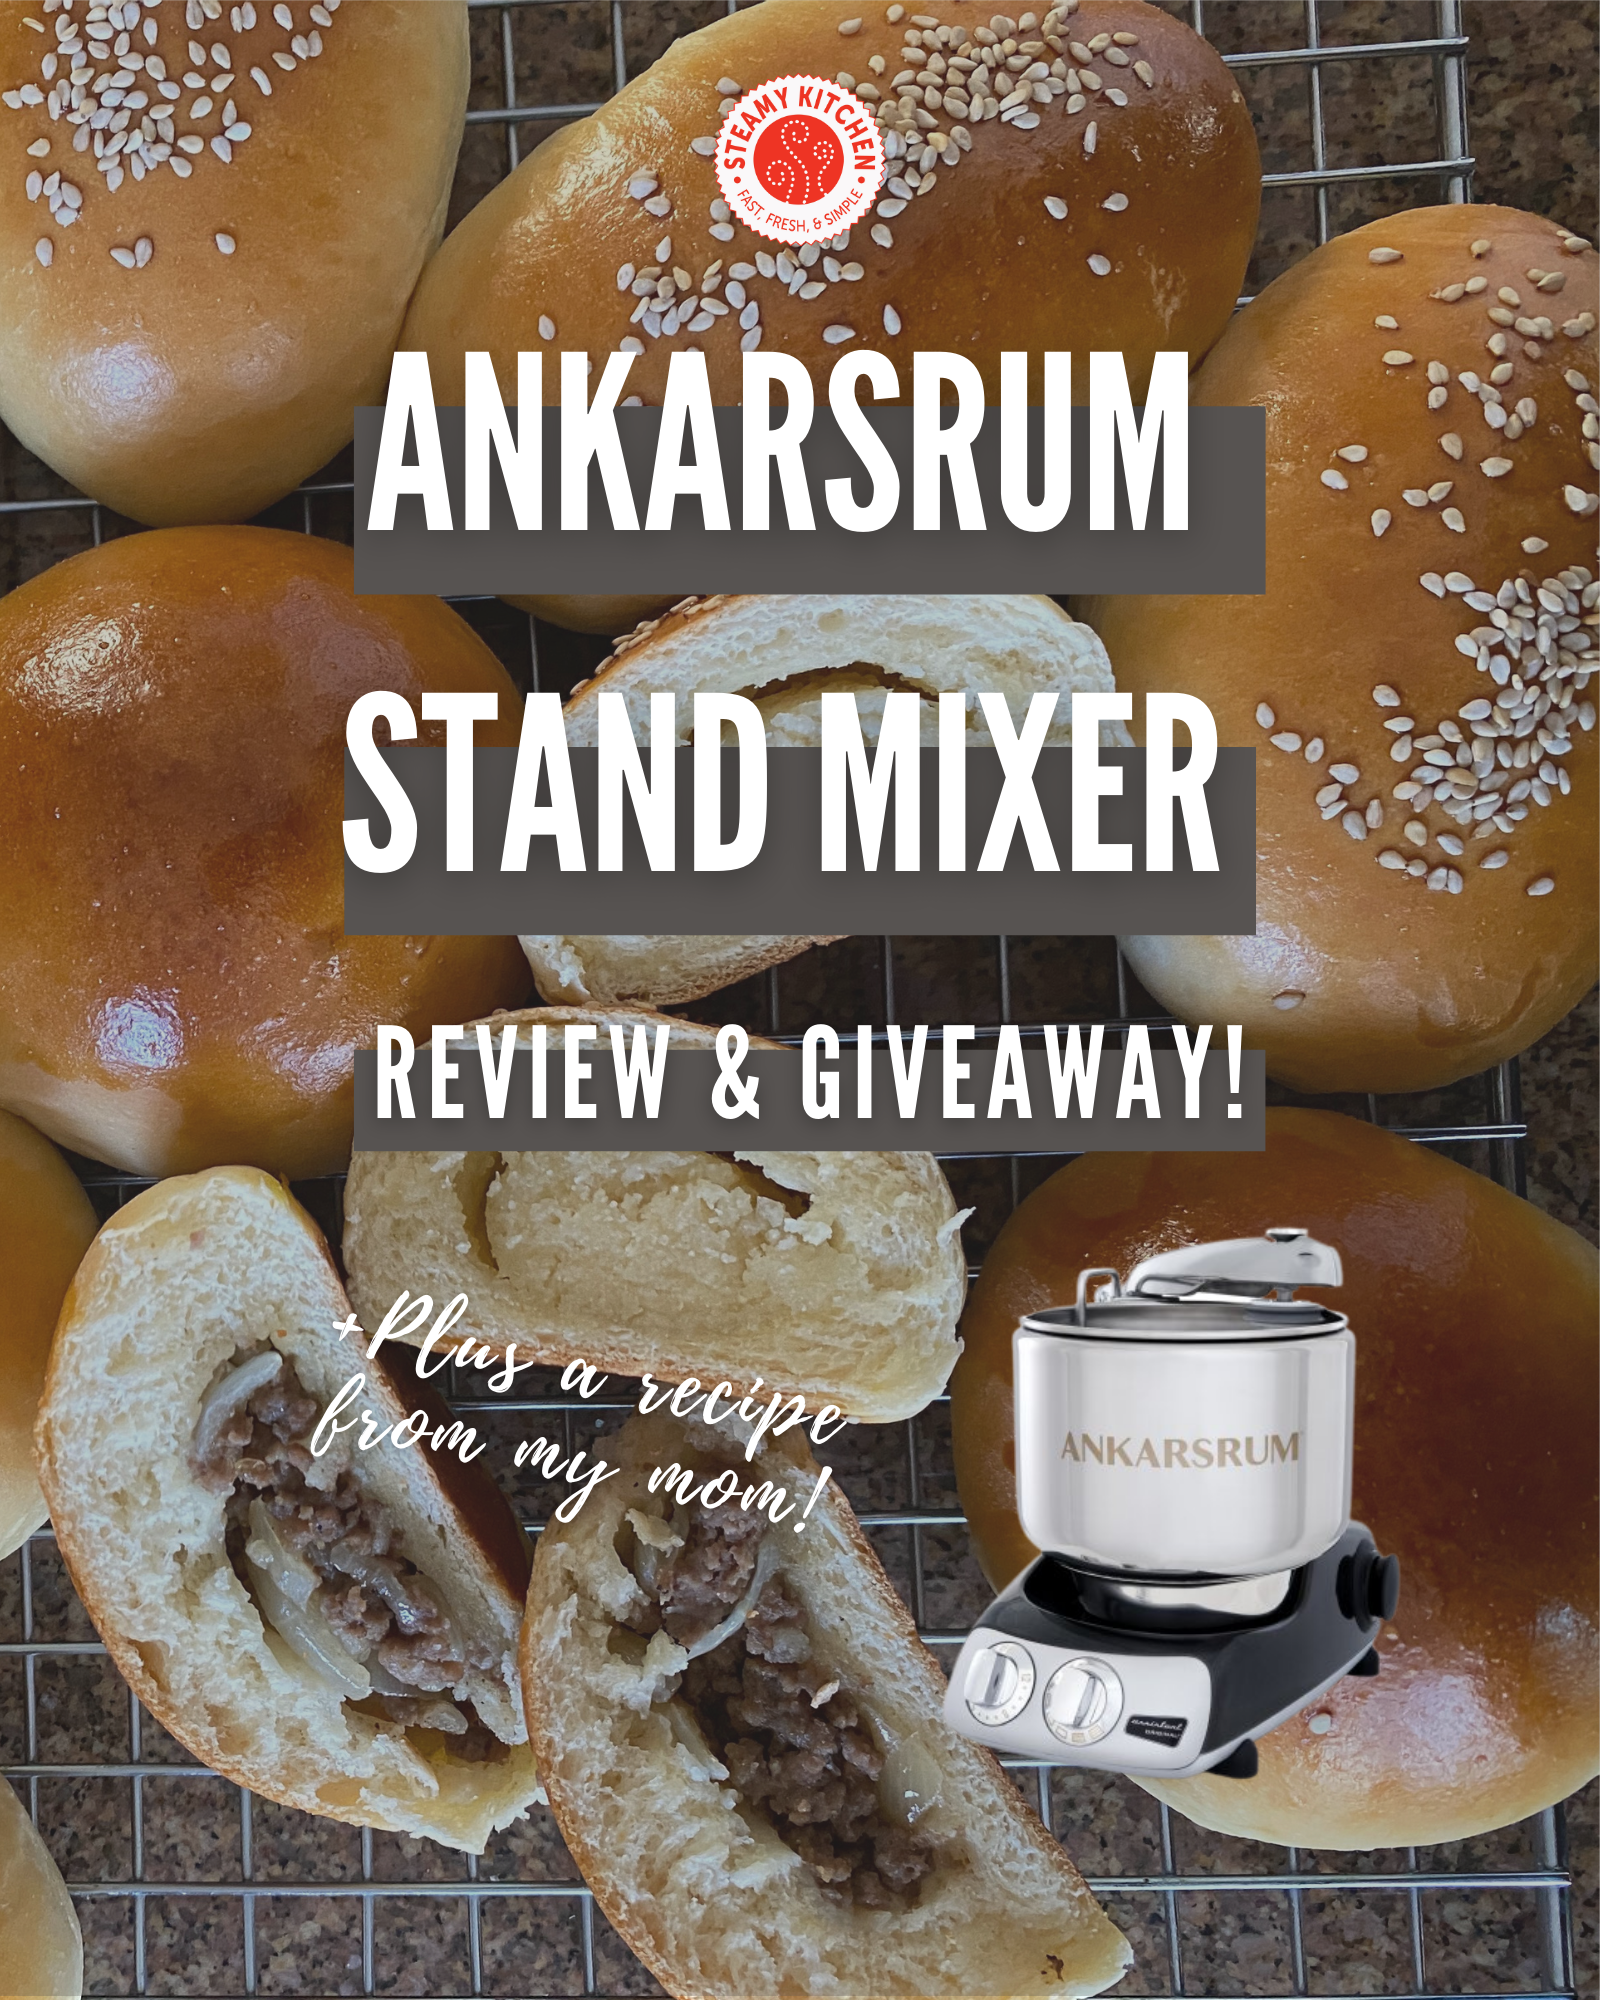 Ankarsrum Assistent Original Stand Mixer Review and GiveawayEnds in 90 days.